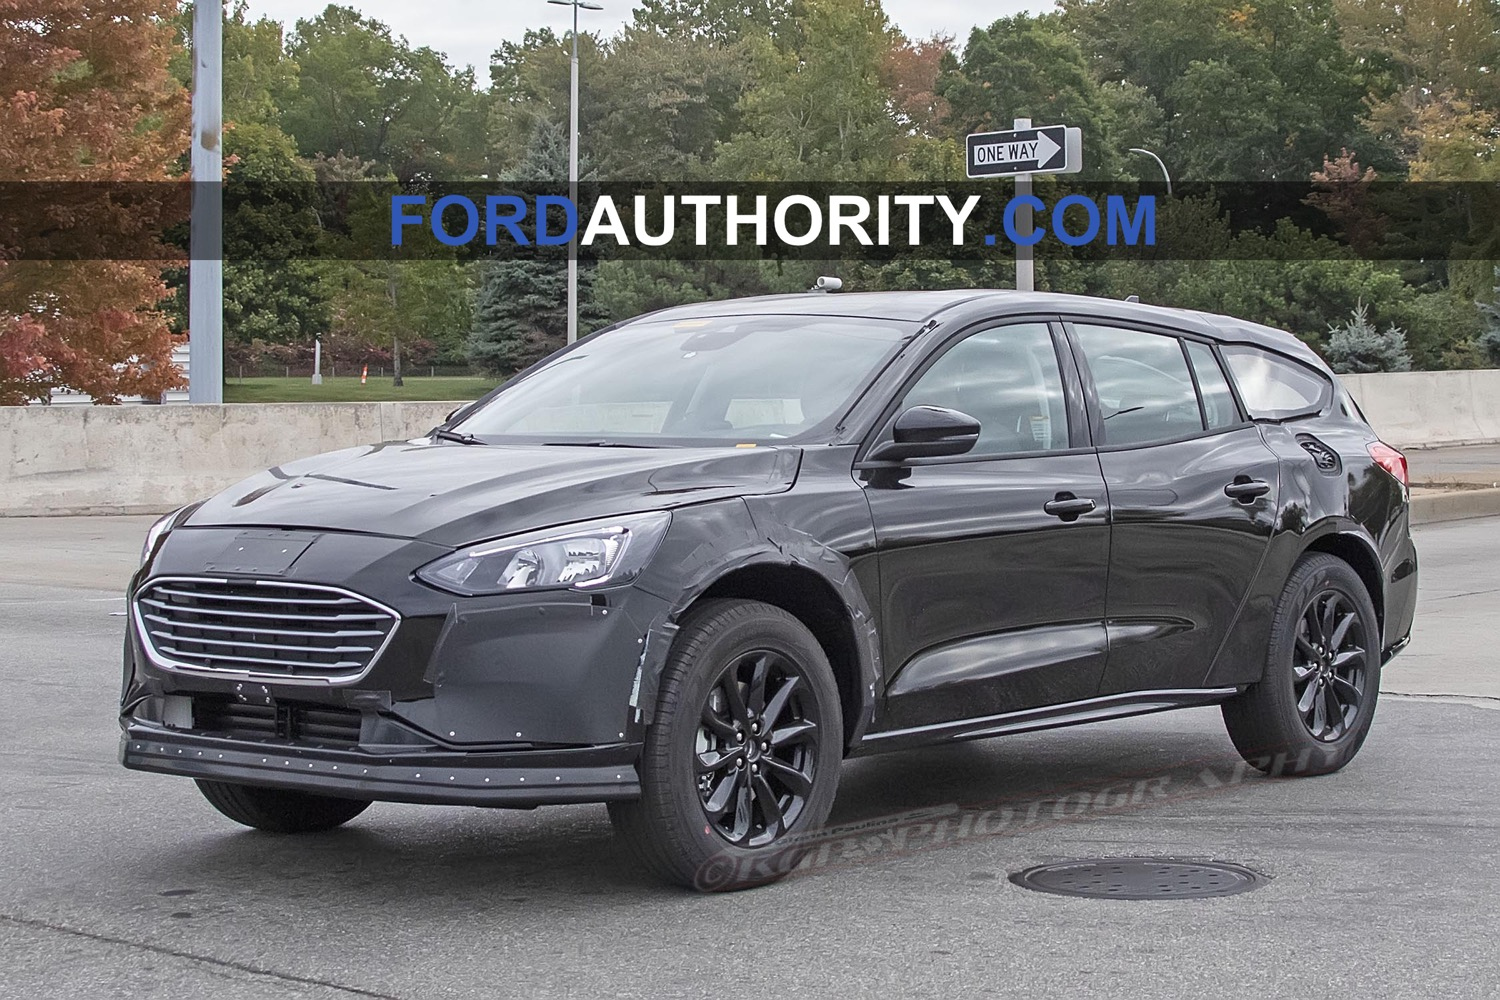 Ford Fusion Replacement Spied As Tall-Riding Wagon - Ford